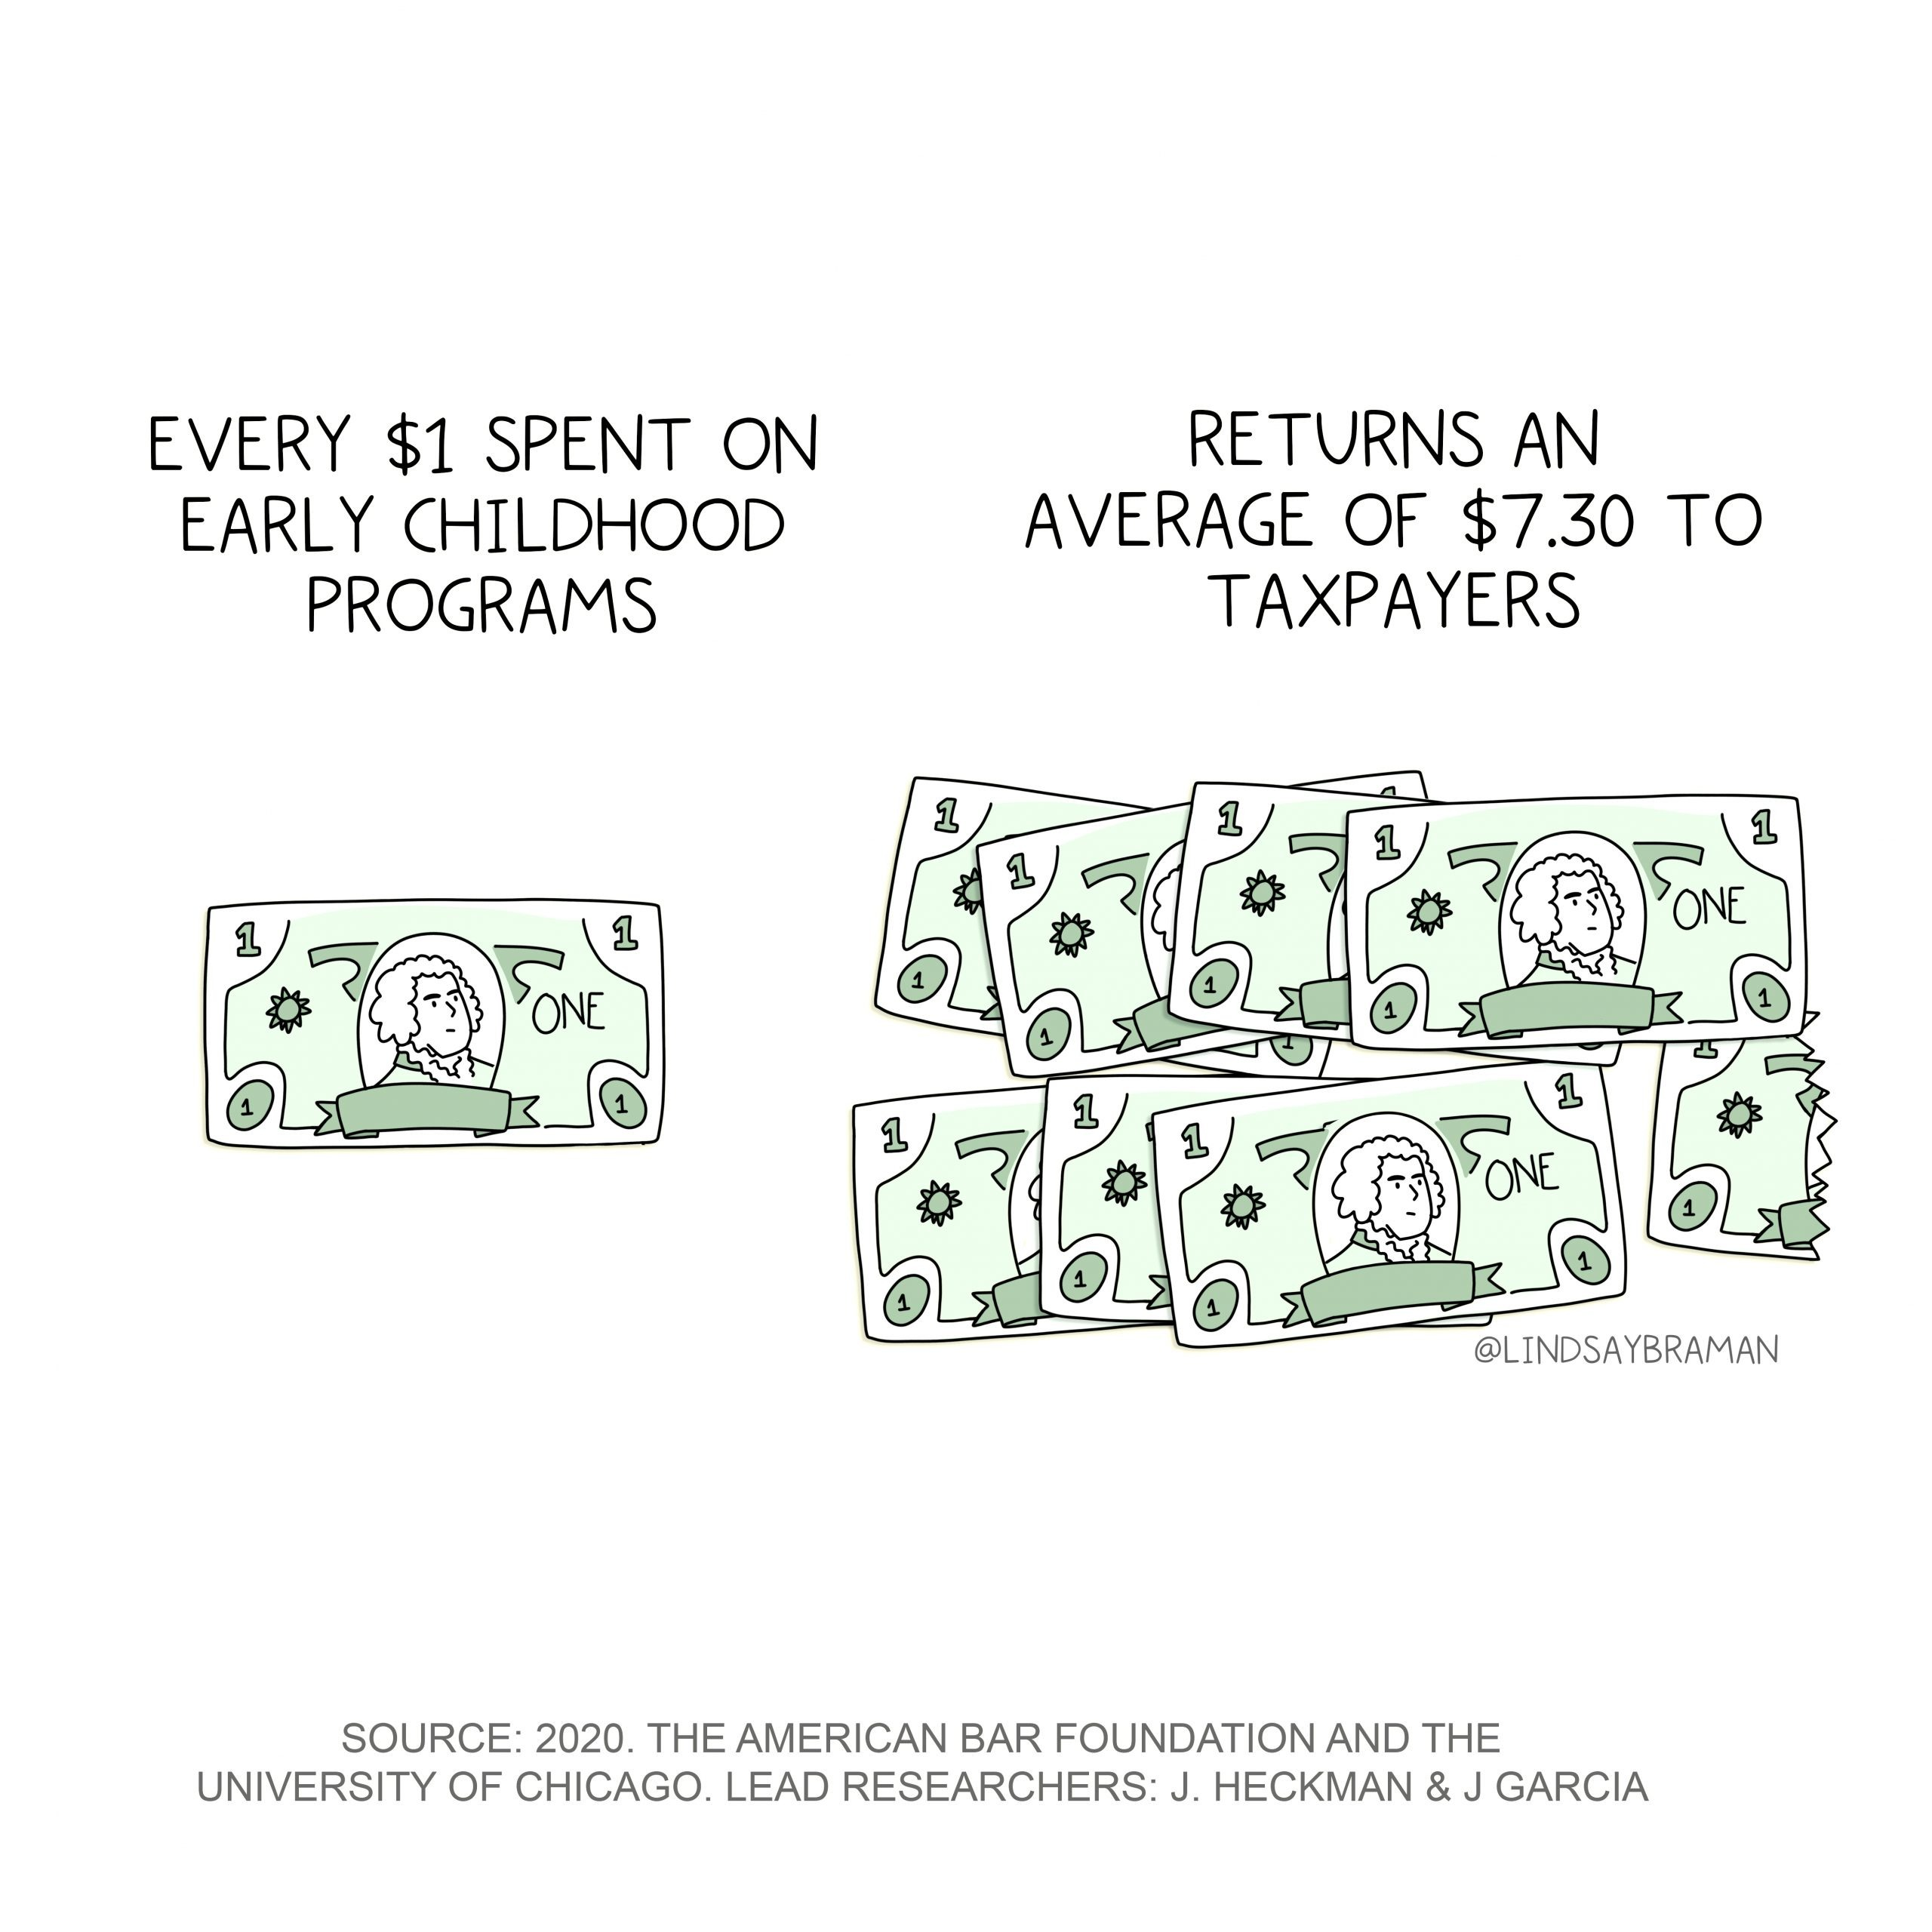 Every $1 spent on early childhood programs returns an average of $7.30 to taxpayers. Source: 2020. The American Bar Foundation and the University of Chicago. Lead researchers: J. Heckman & J. Garcia.